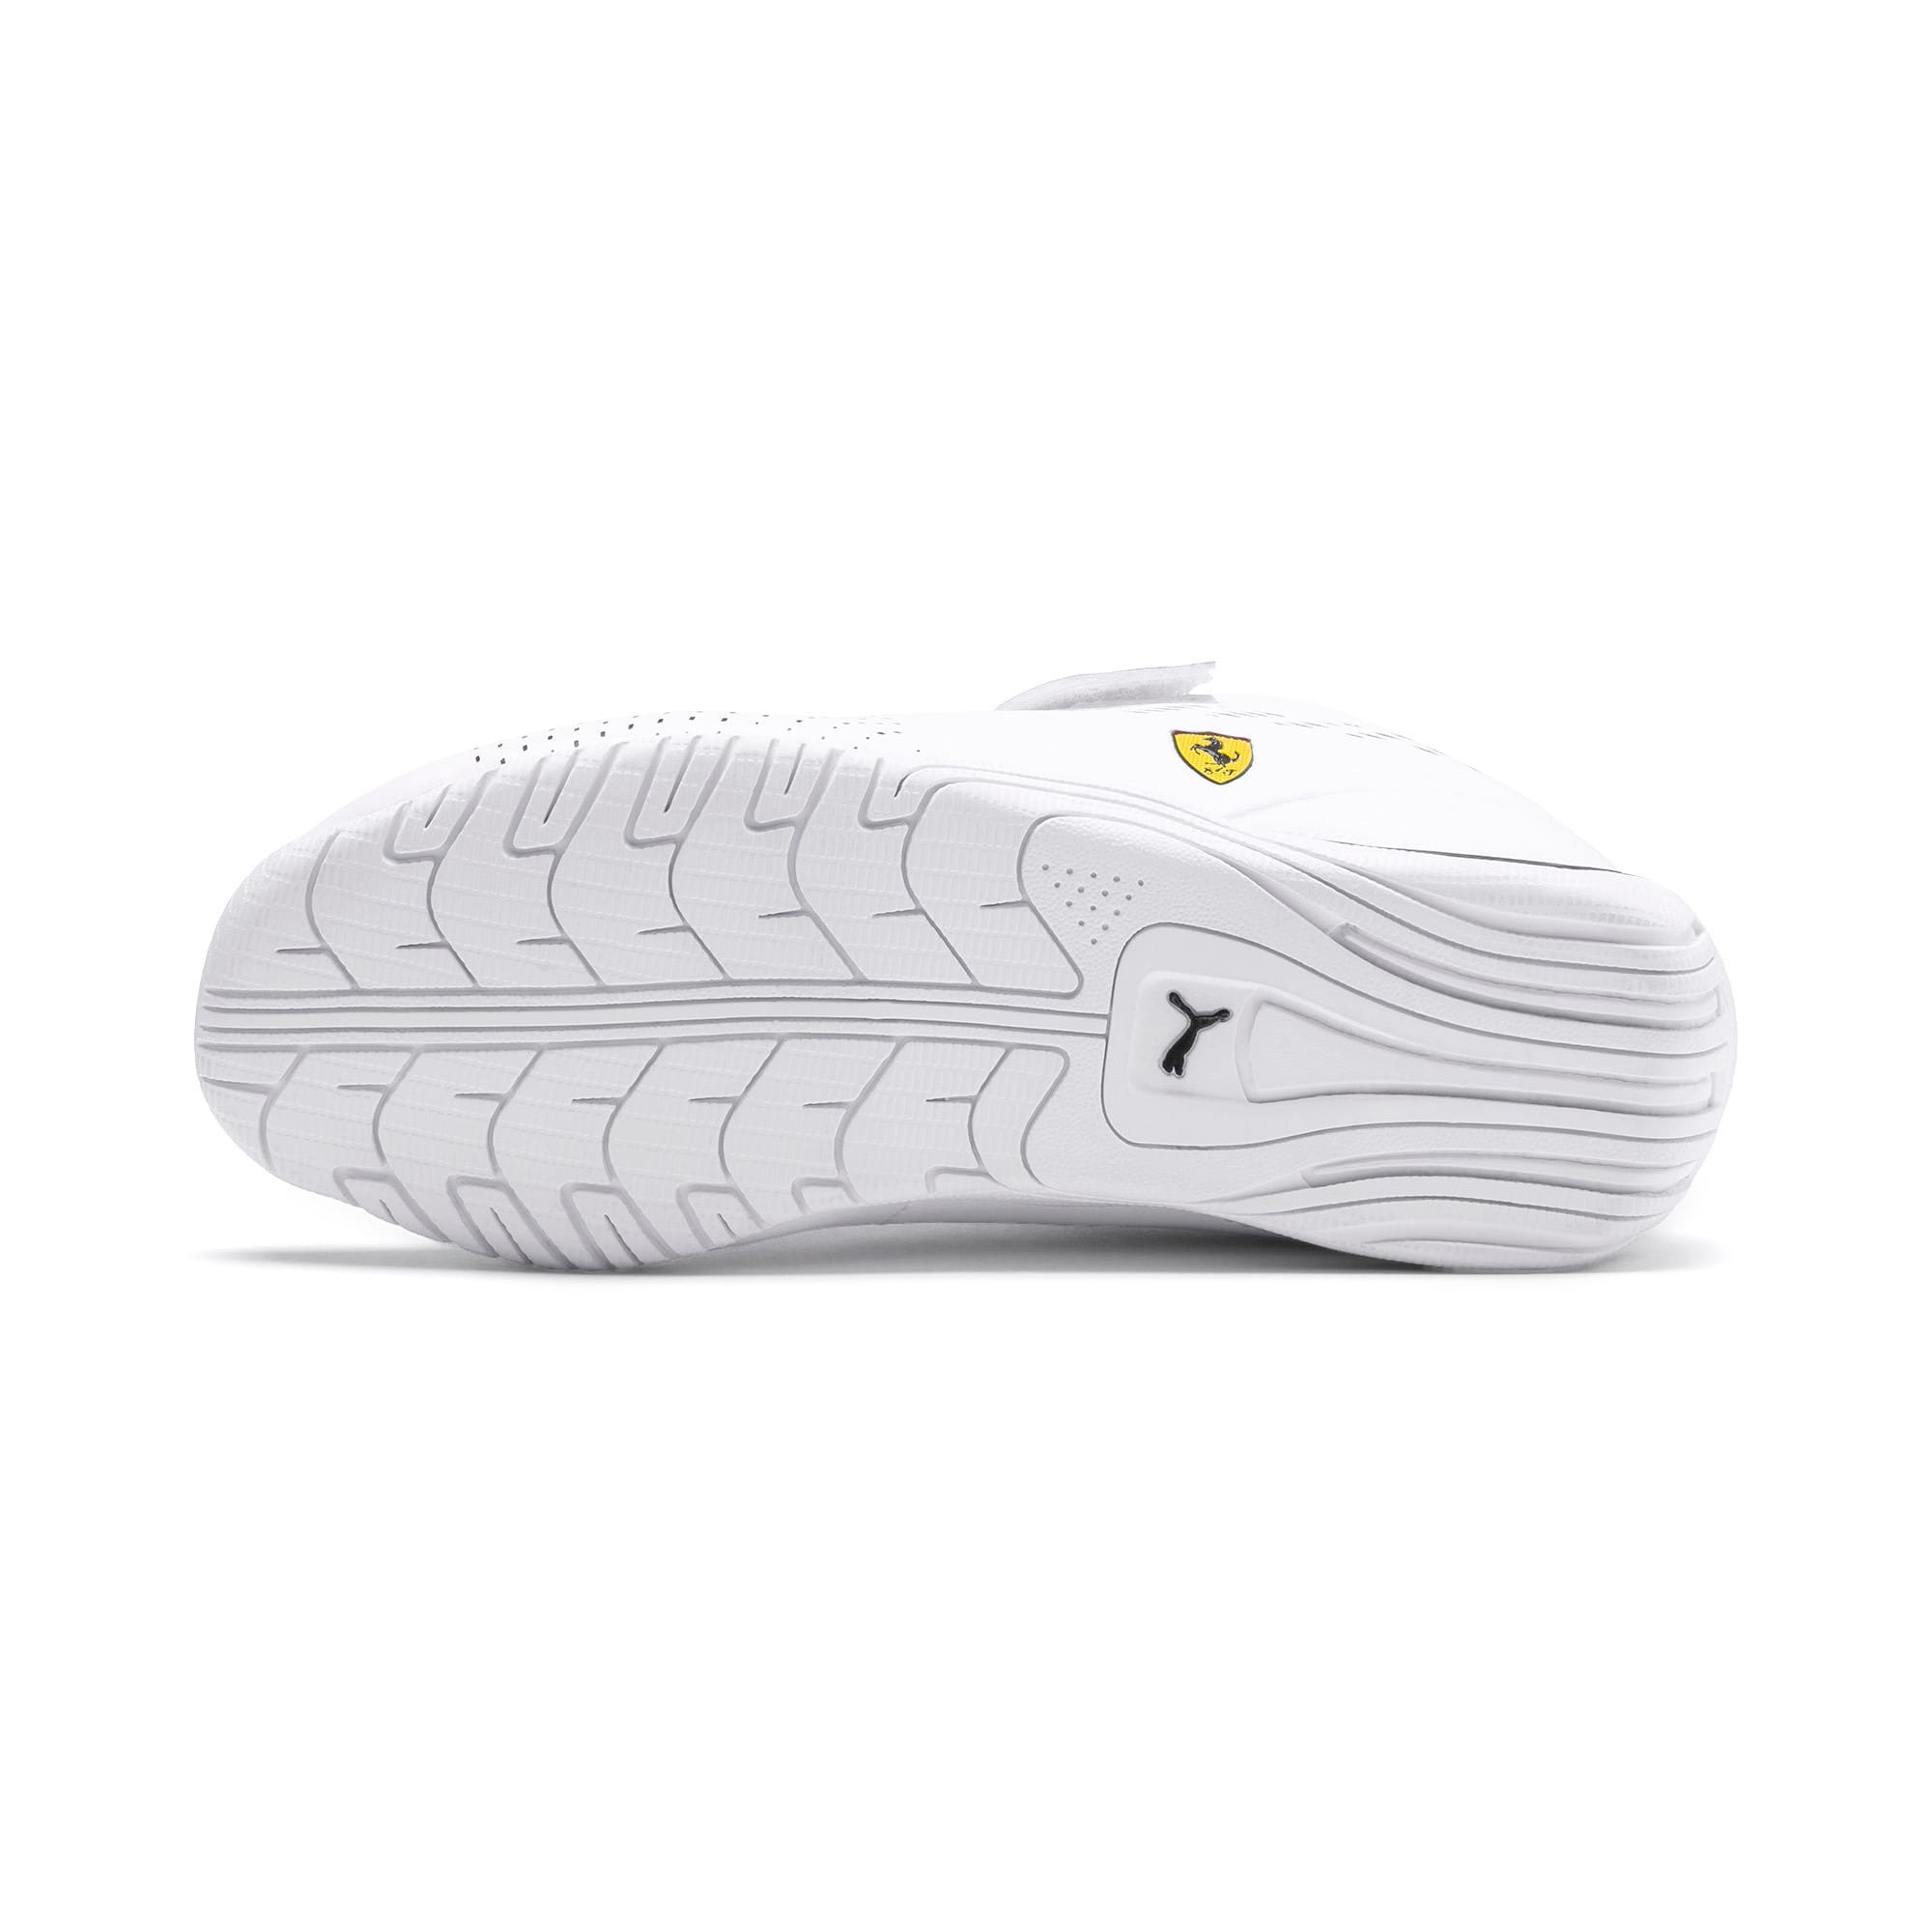 Thumbnail 4 of Ferrari Drift Cat 5 Ultra II V Kids Sneaker, Puma White-Puma Black, medium